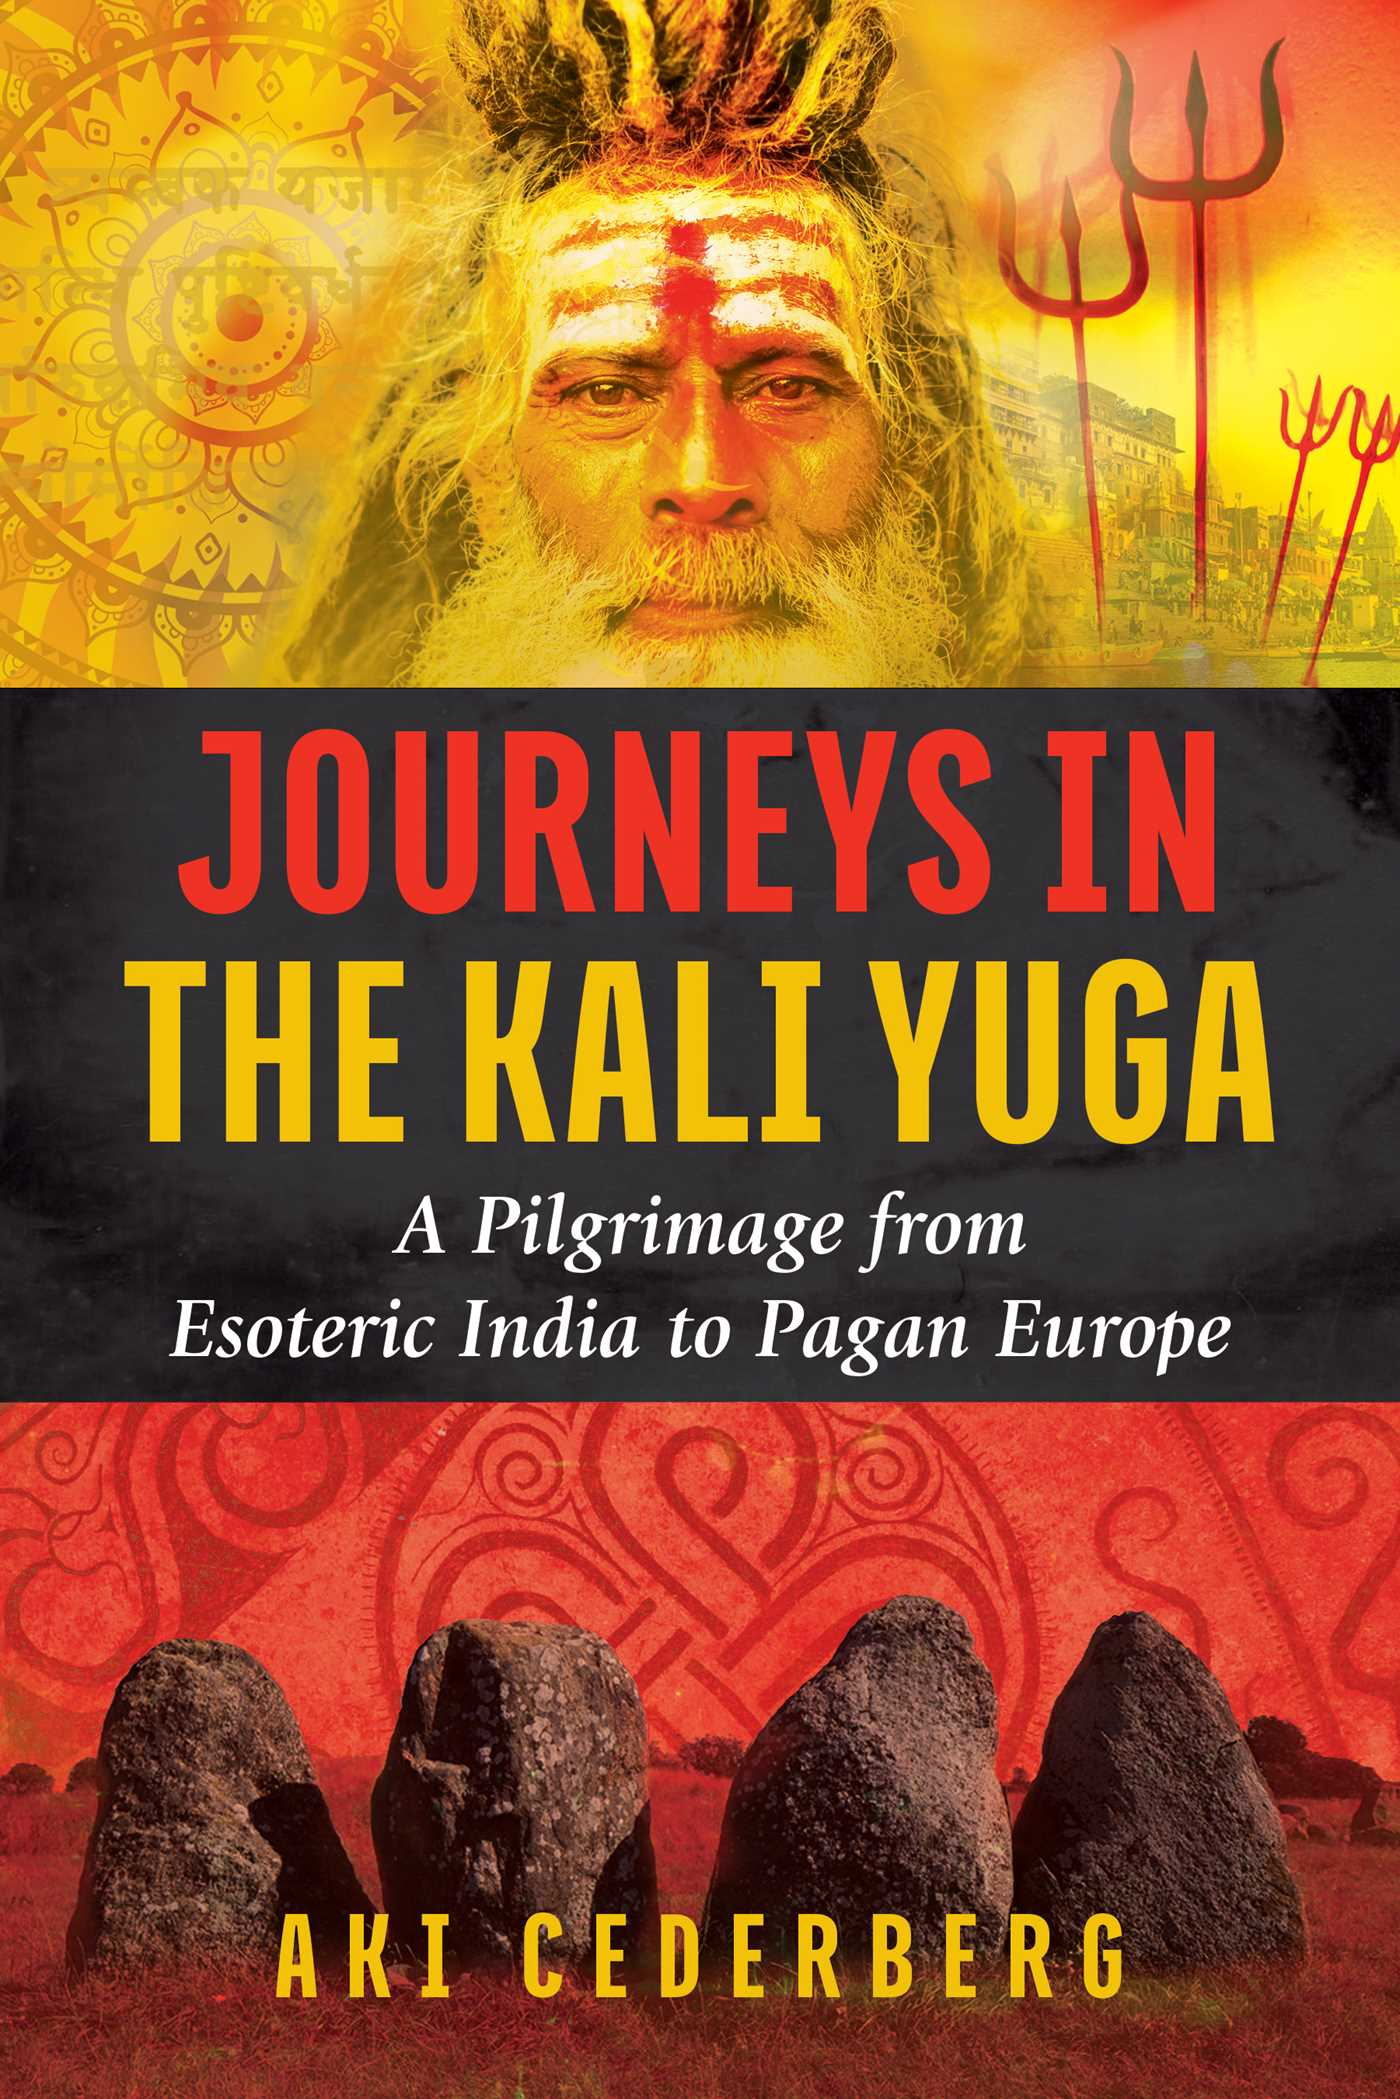 Journeys in the kali yuga 9781620556795 hr